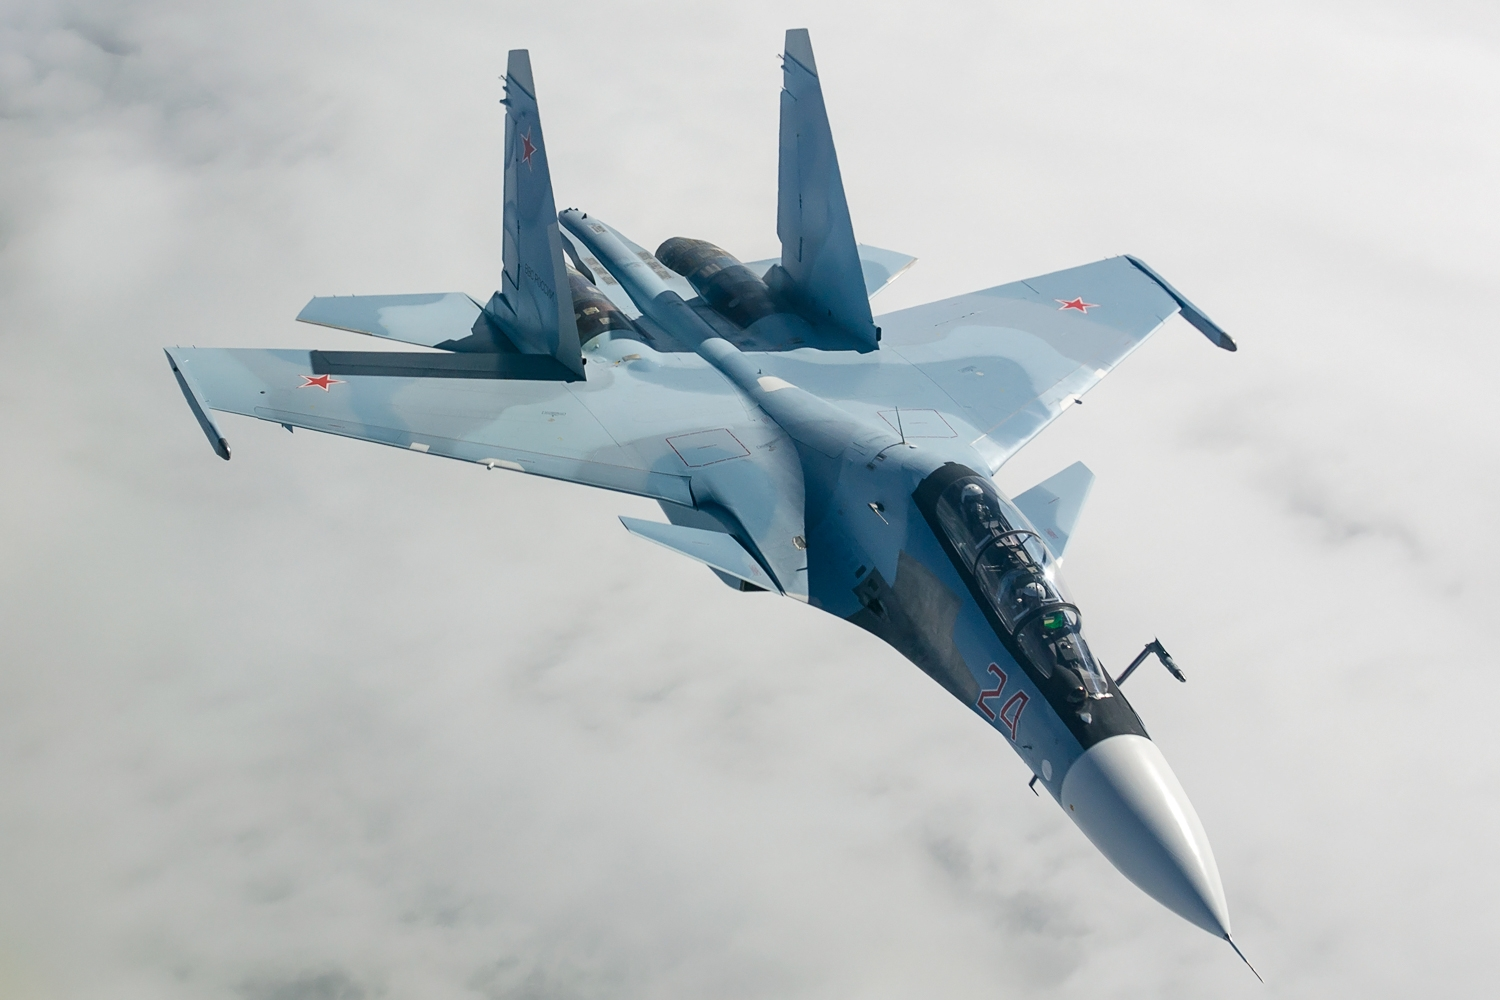 File:Sukhoi Su-30SM in flight 2014.jpg - Wikimedia Commons